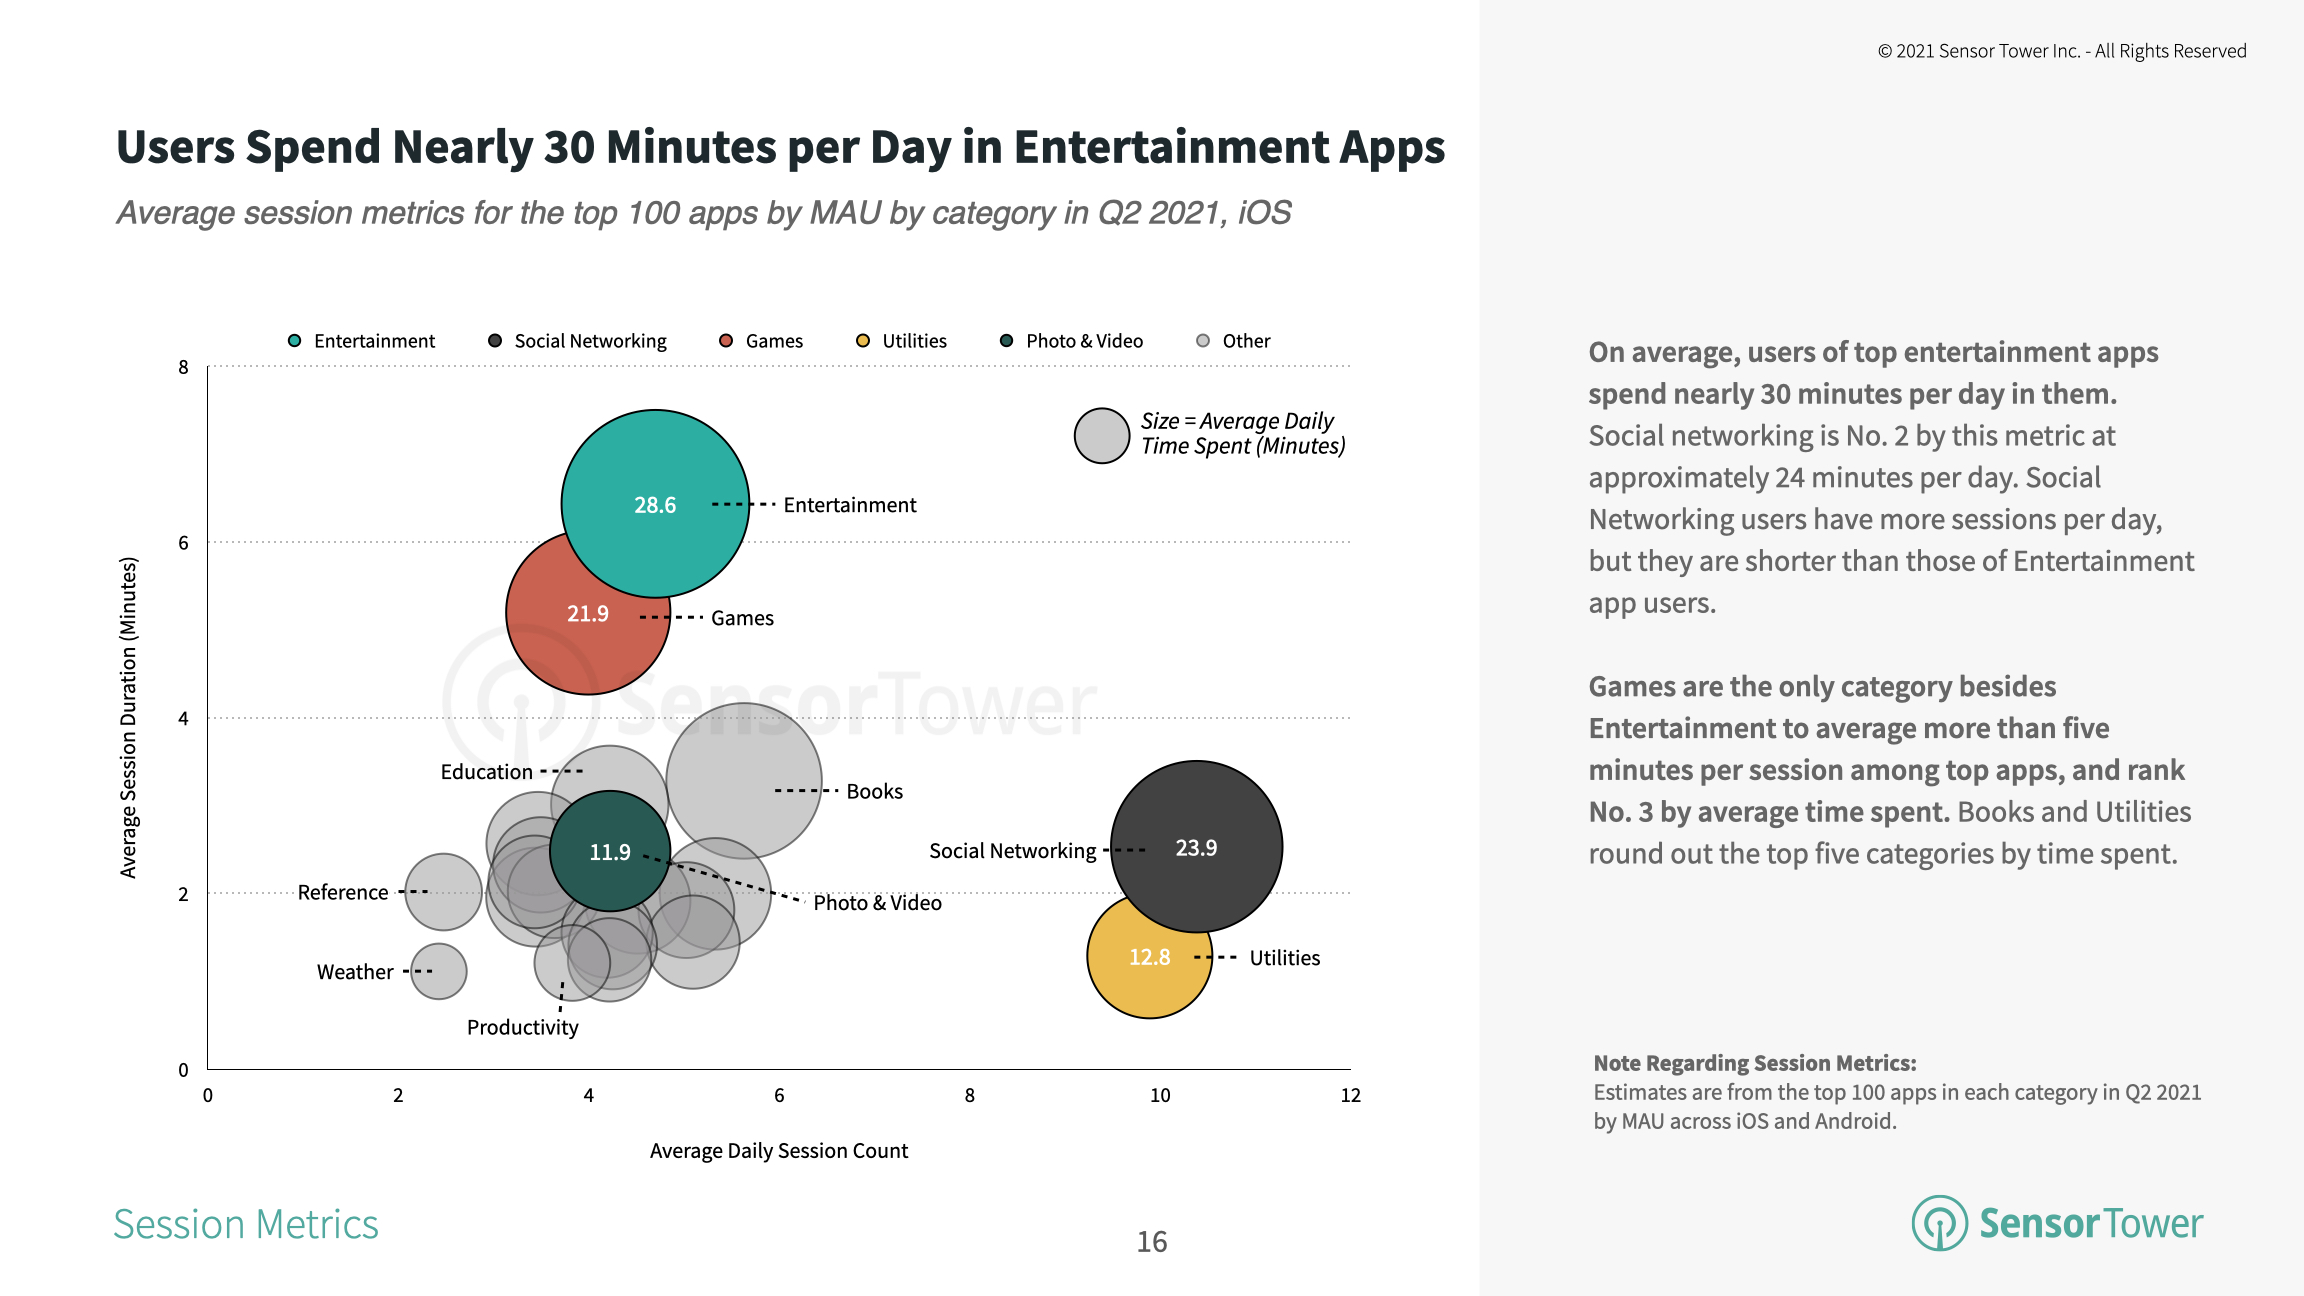 Users averaged about 28.6 minutes in Entertainment apps each day in 2Q21.